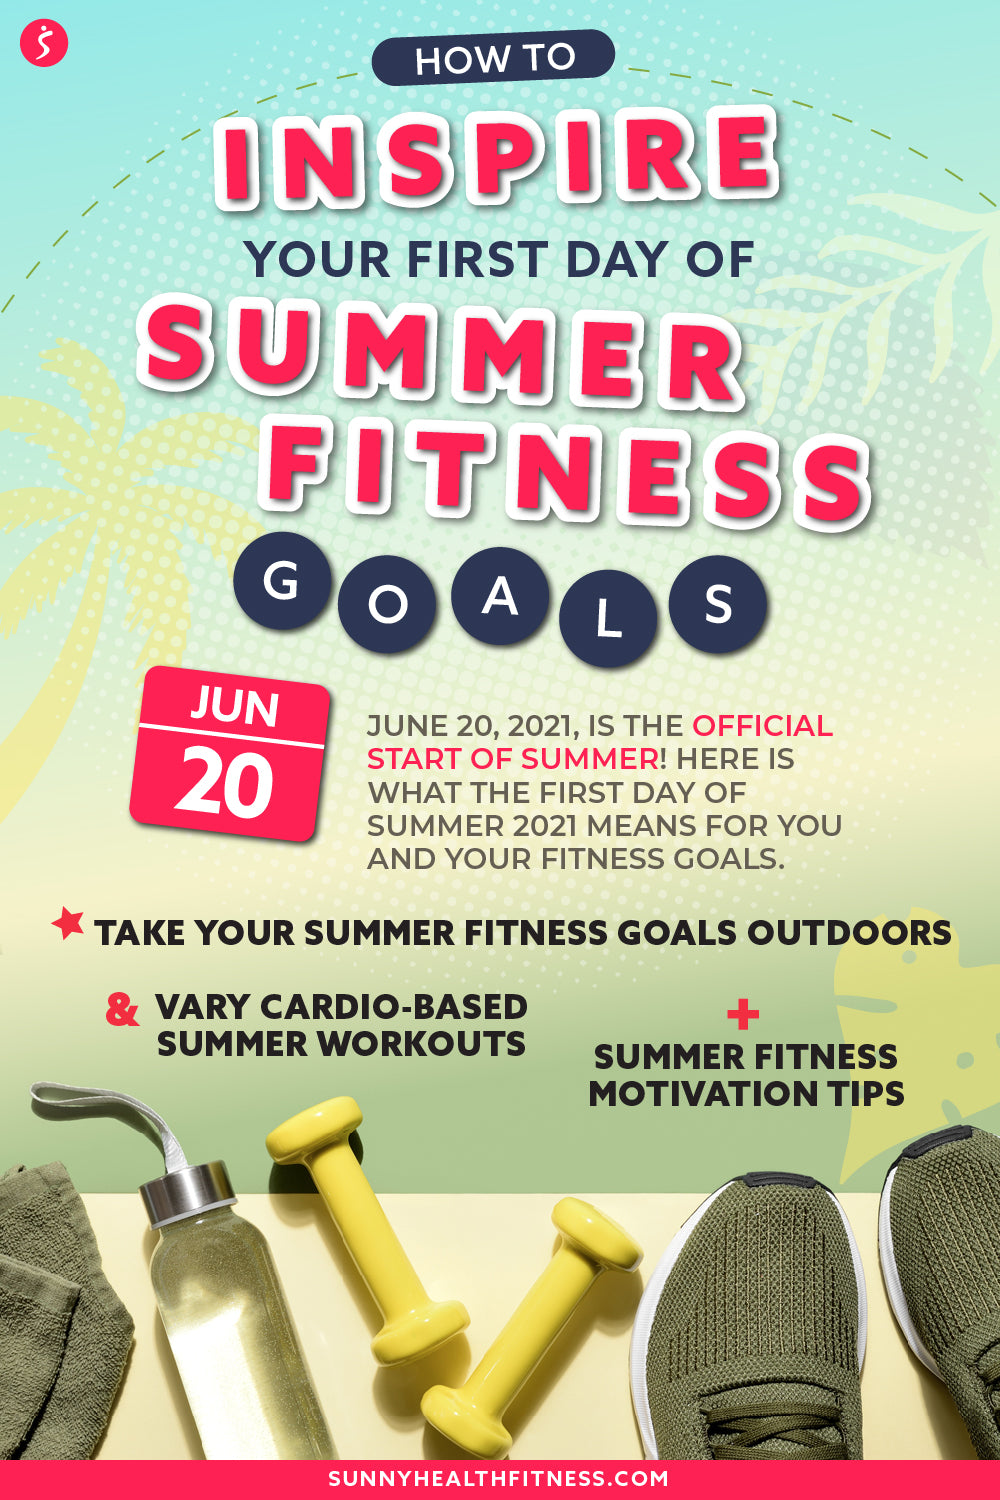 Best Tips to Motivate Your Summer Workout Goals